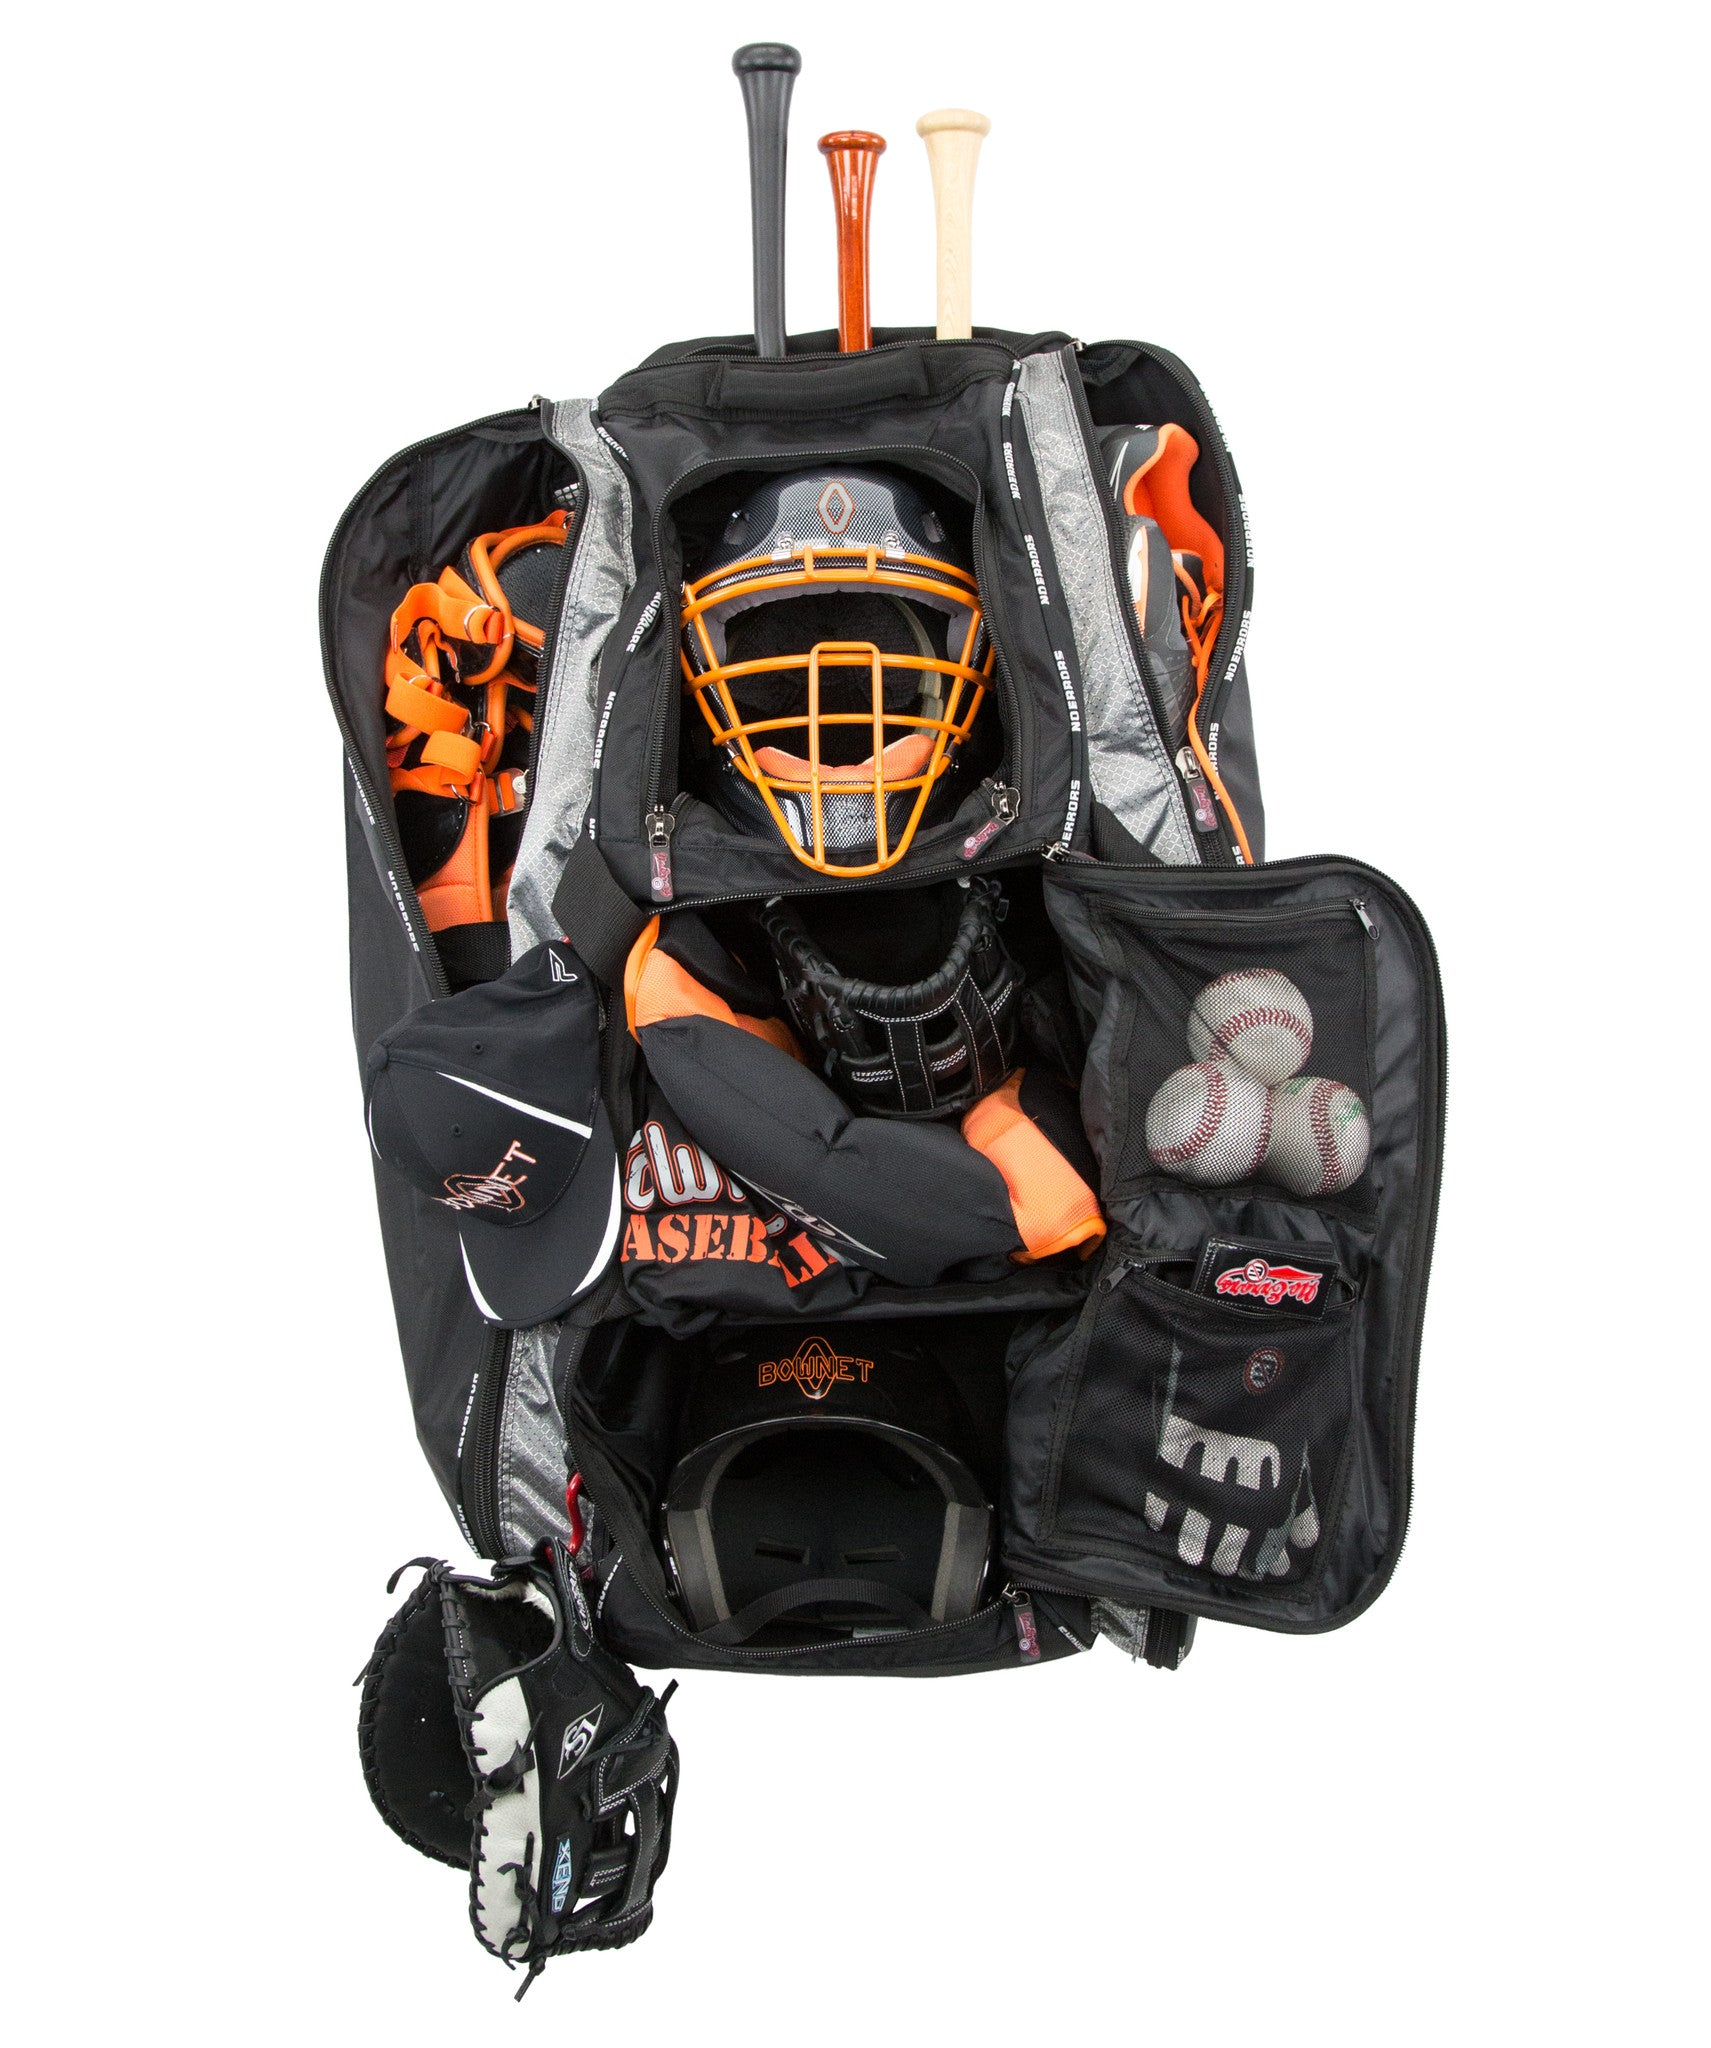 Tell Me About No Errors E2 Catchers Bag In Detail